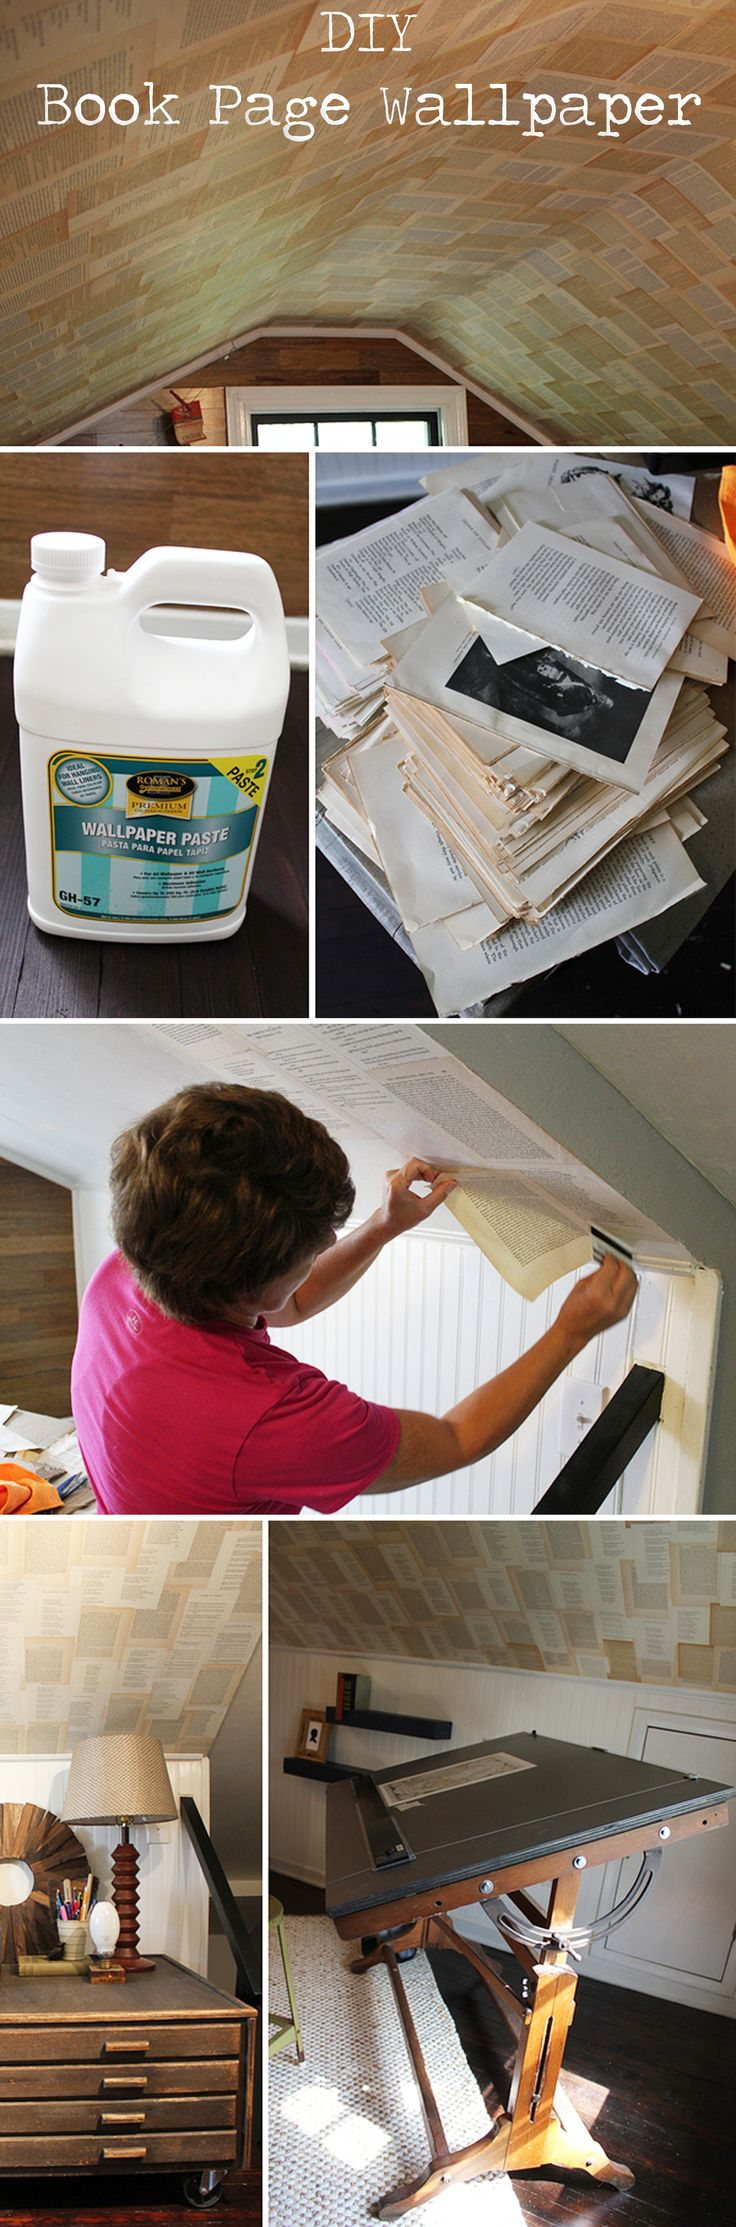 How Long Does Wallpaper Paste Last